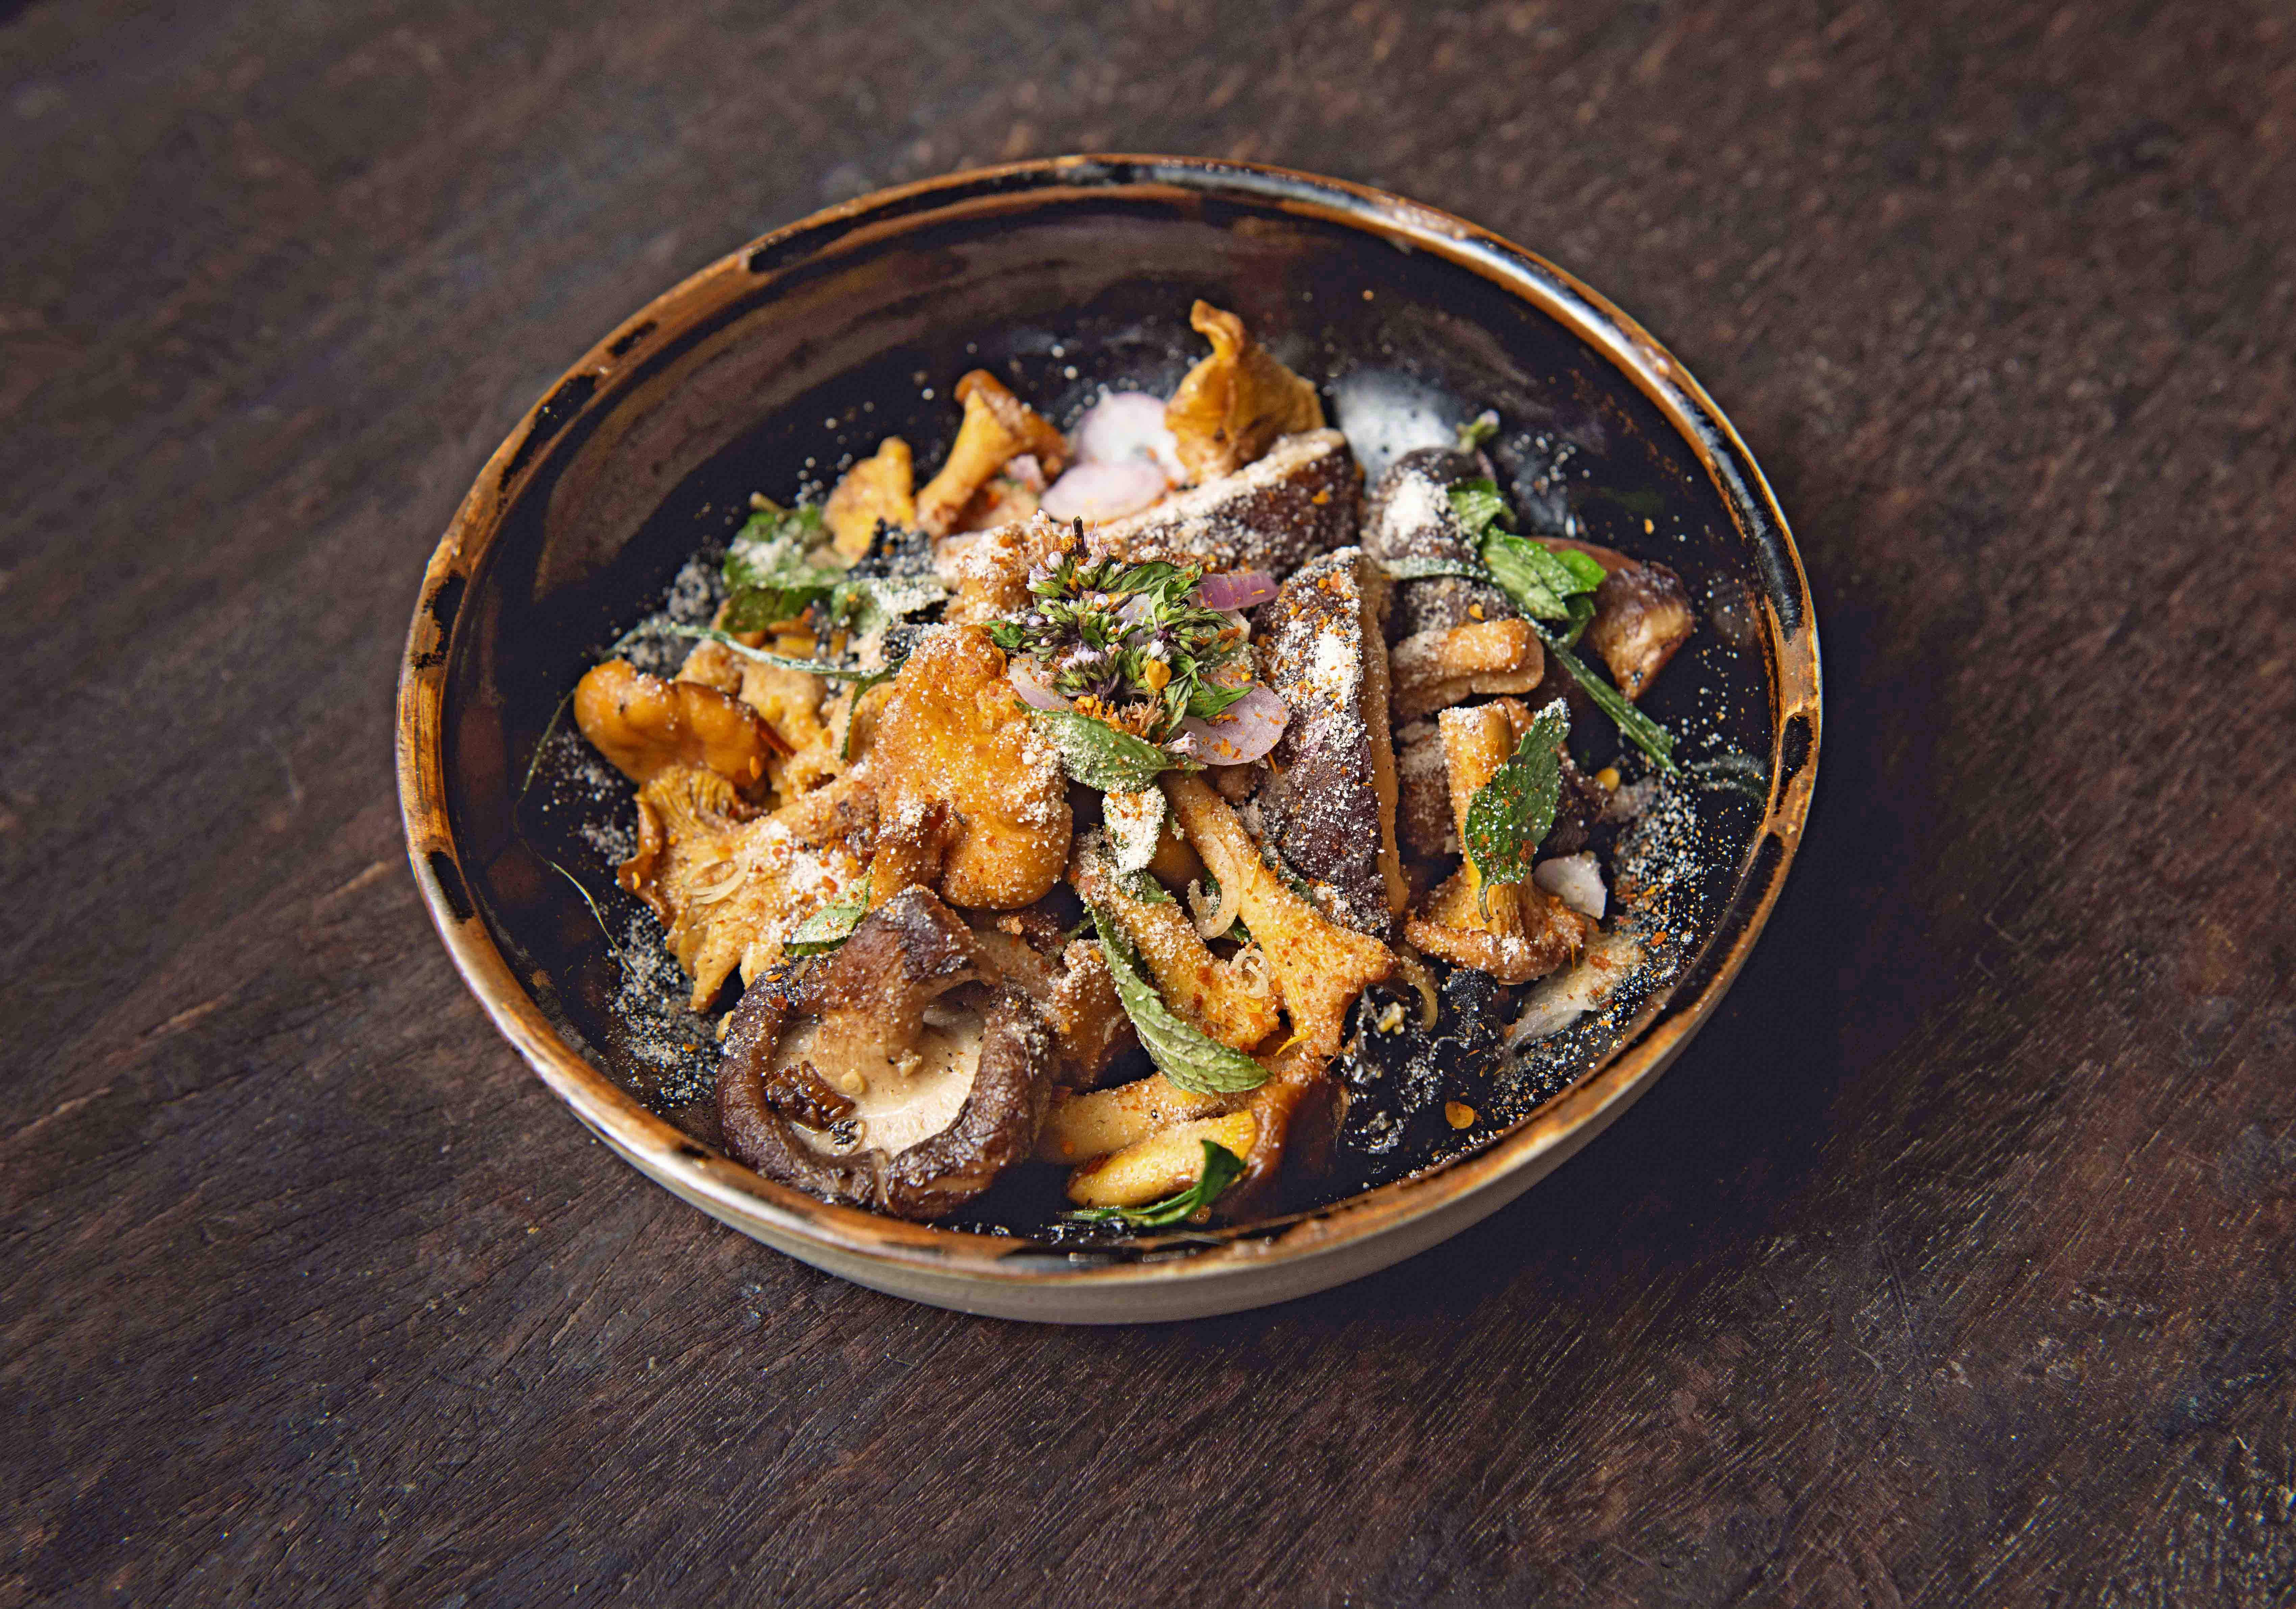 Small bowl of wild mushrooms with green leaves on top